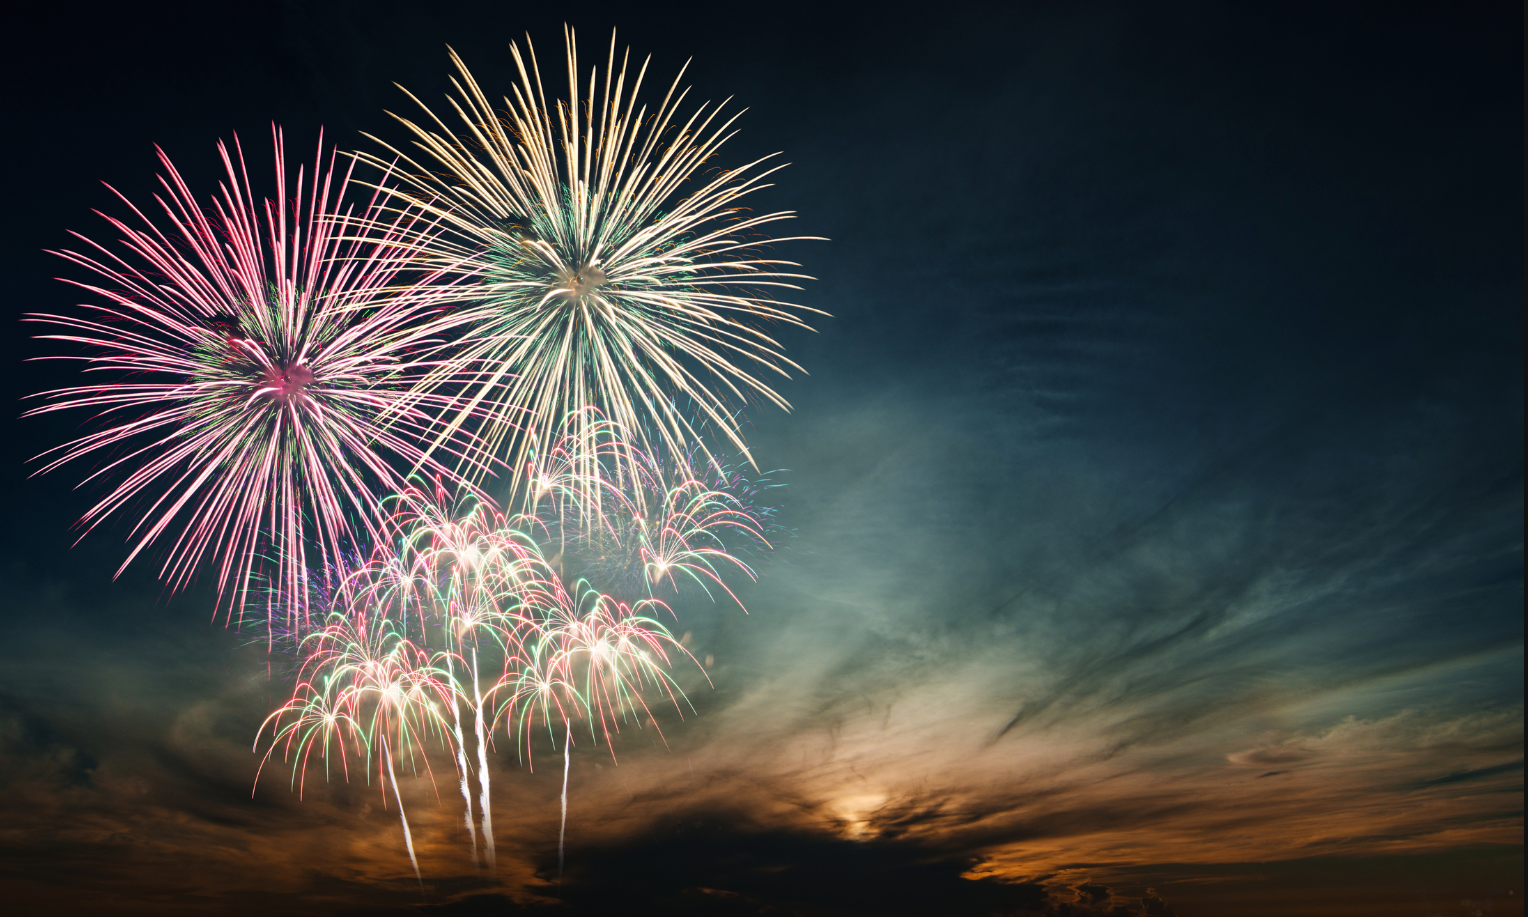 Five Firework Words to Light Up Your Celebrations -